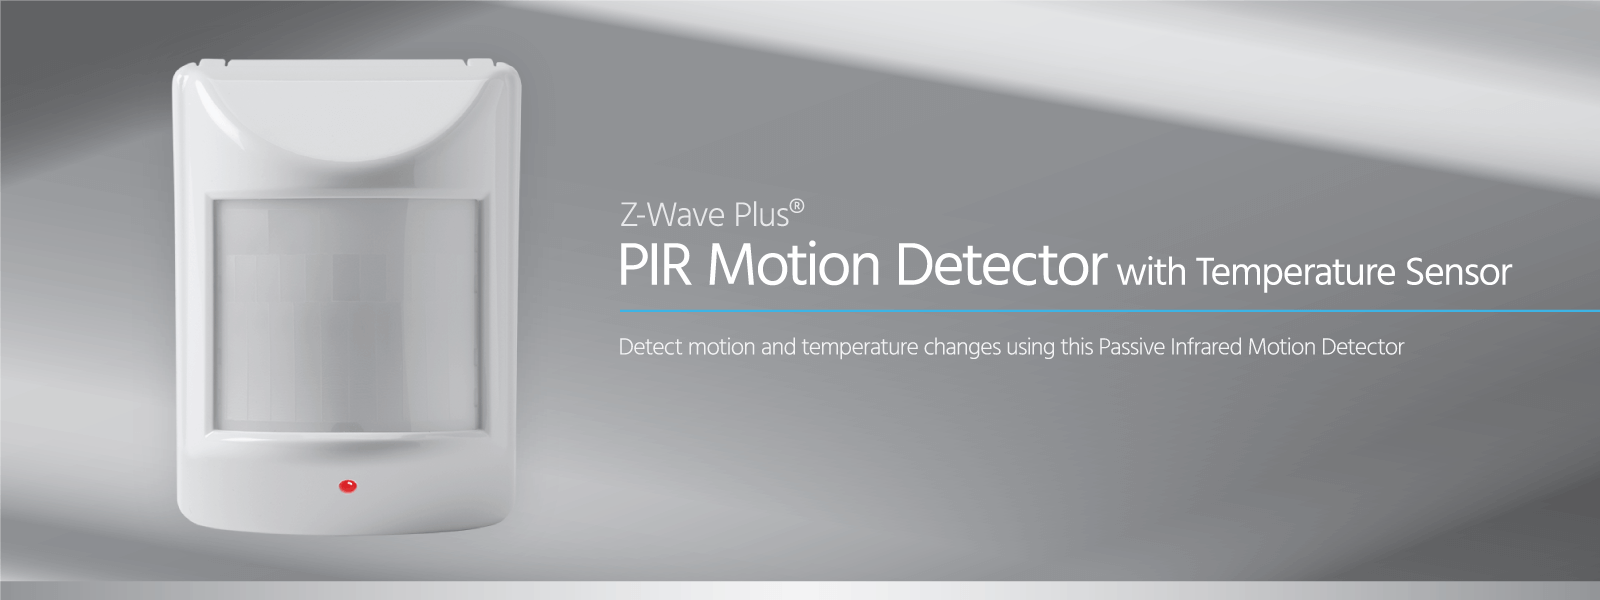 Monoprice Z Wave Plus Pir Motion Detector With Temperature